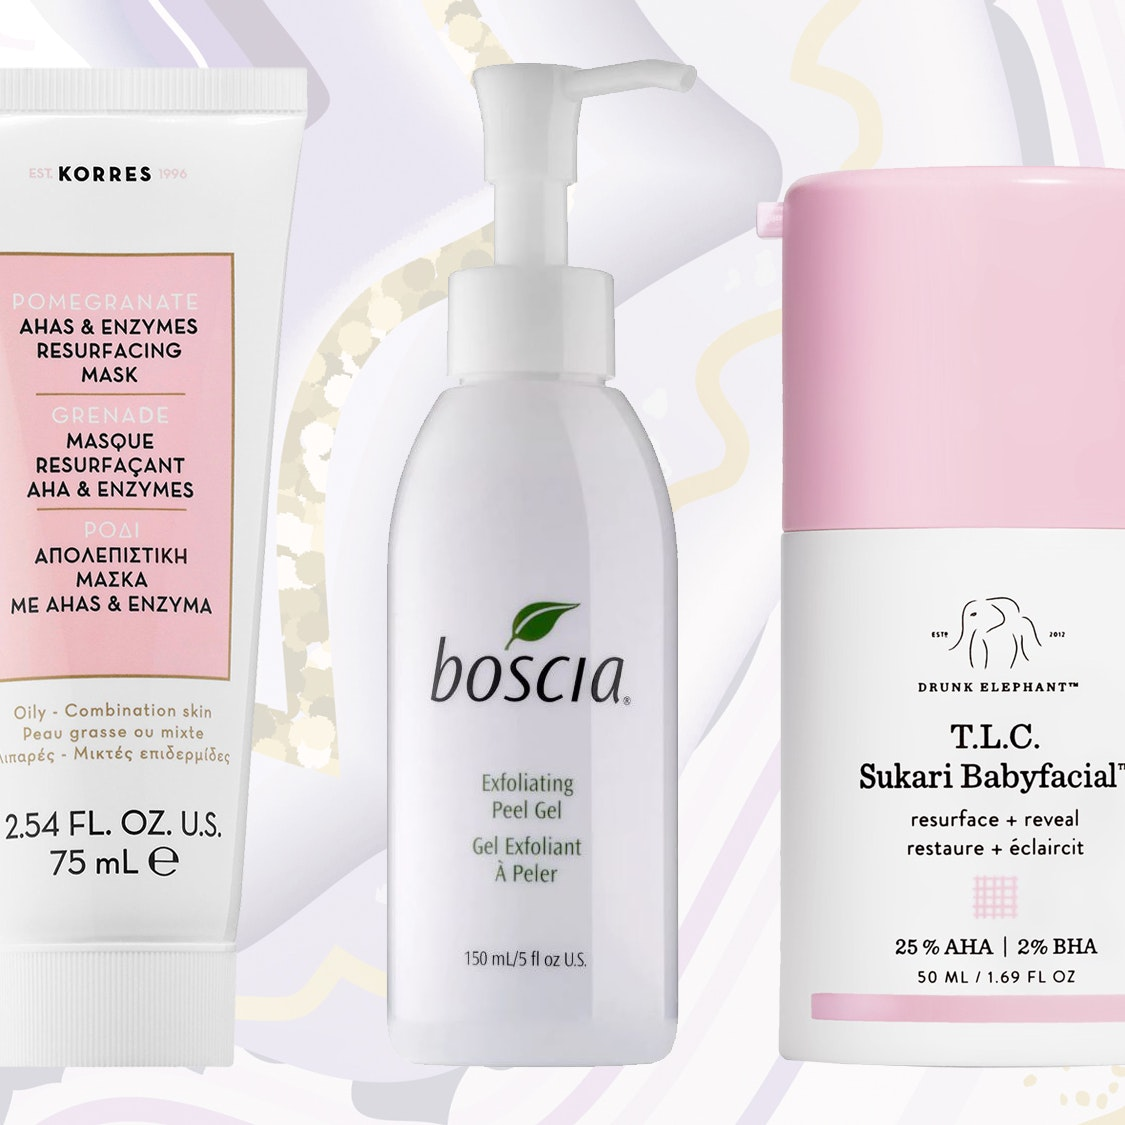 7 of the Best Chemical Peels on the Market, According to Sephora Shoppers